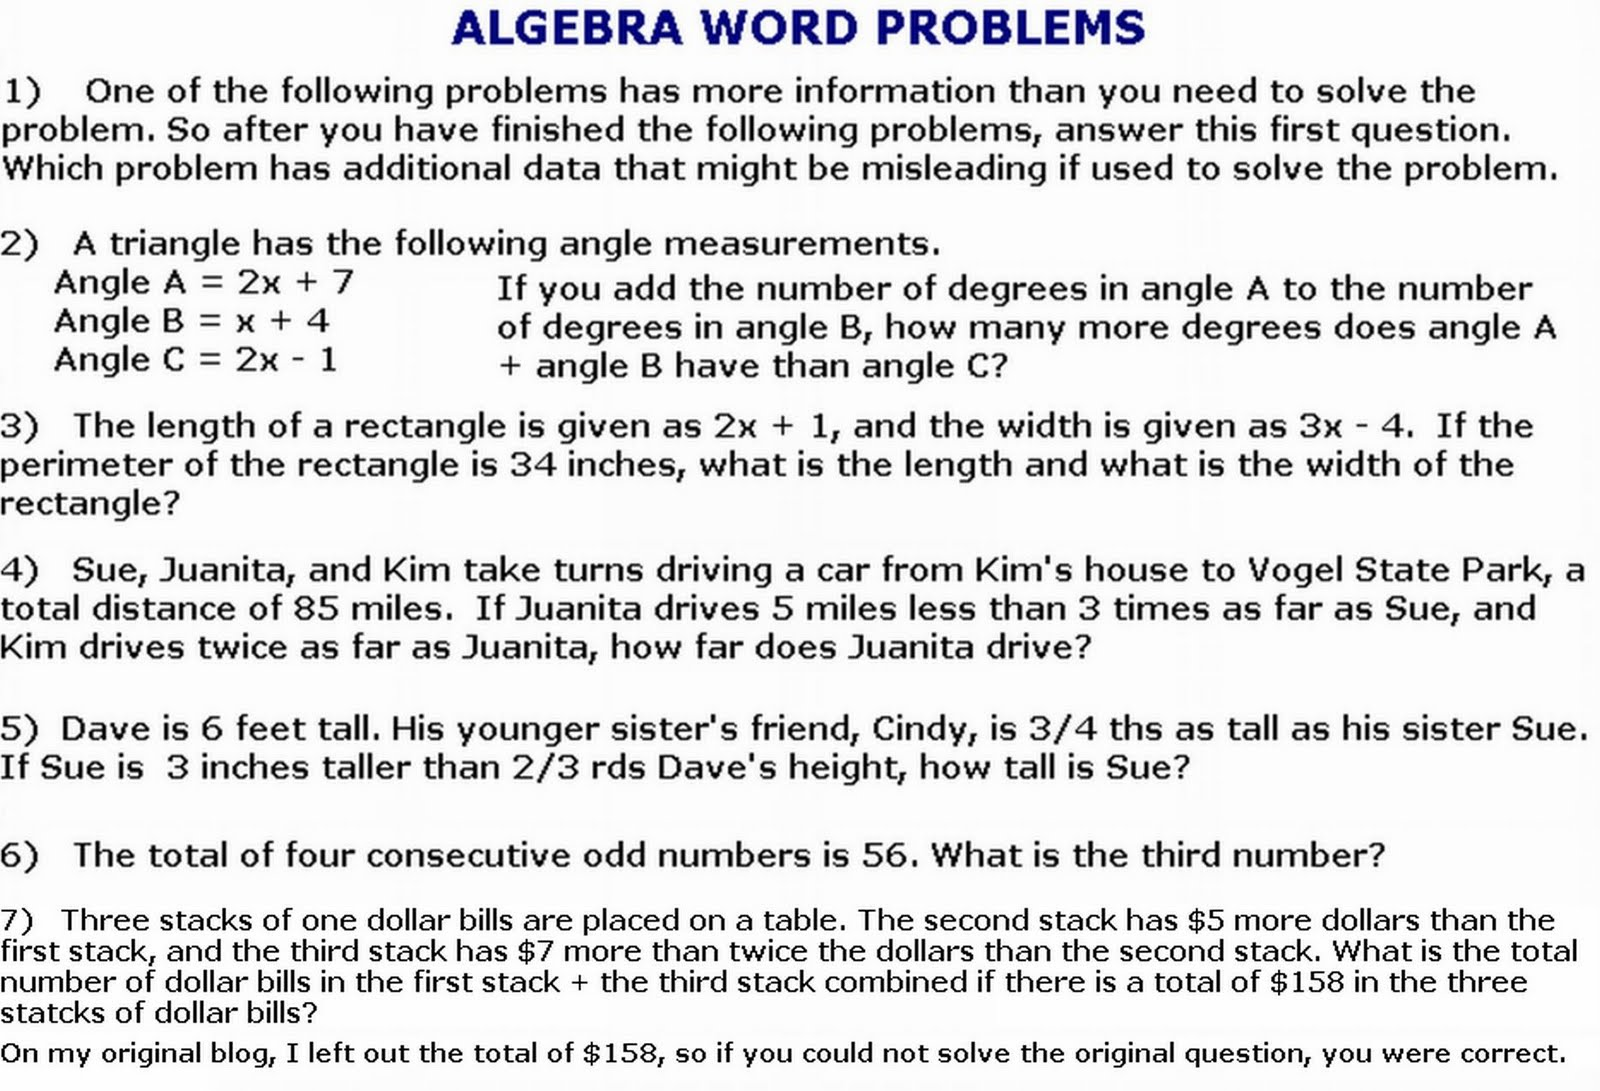 Cobb Adult Ed Math: Algebra Word Problems